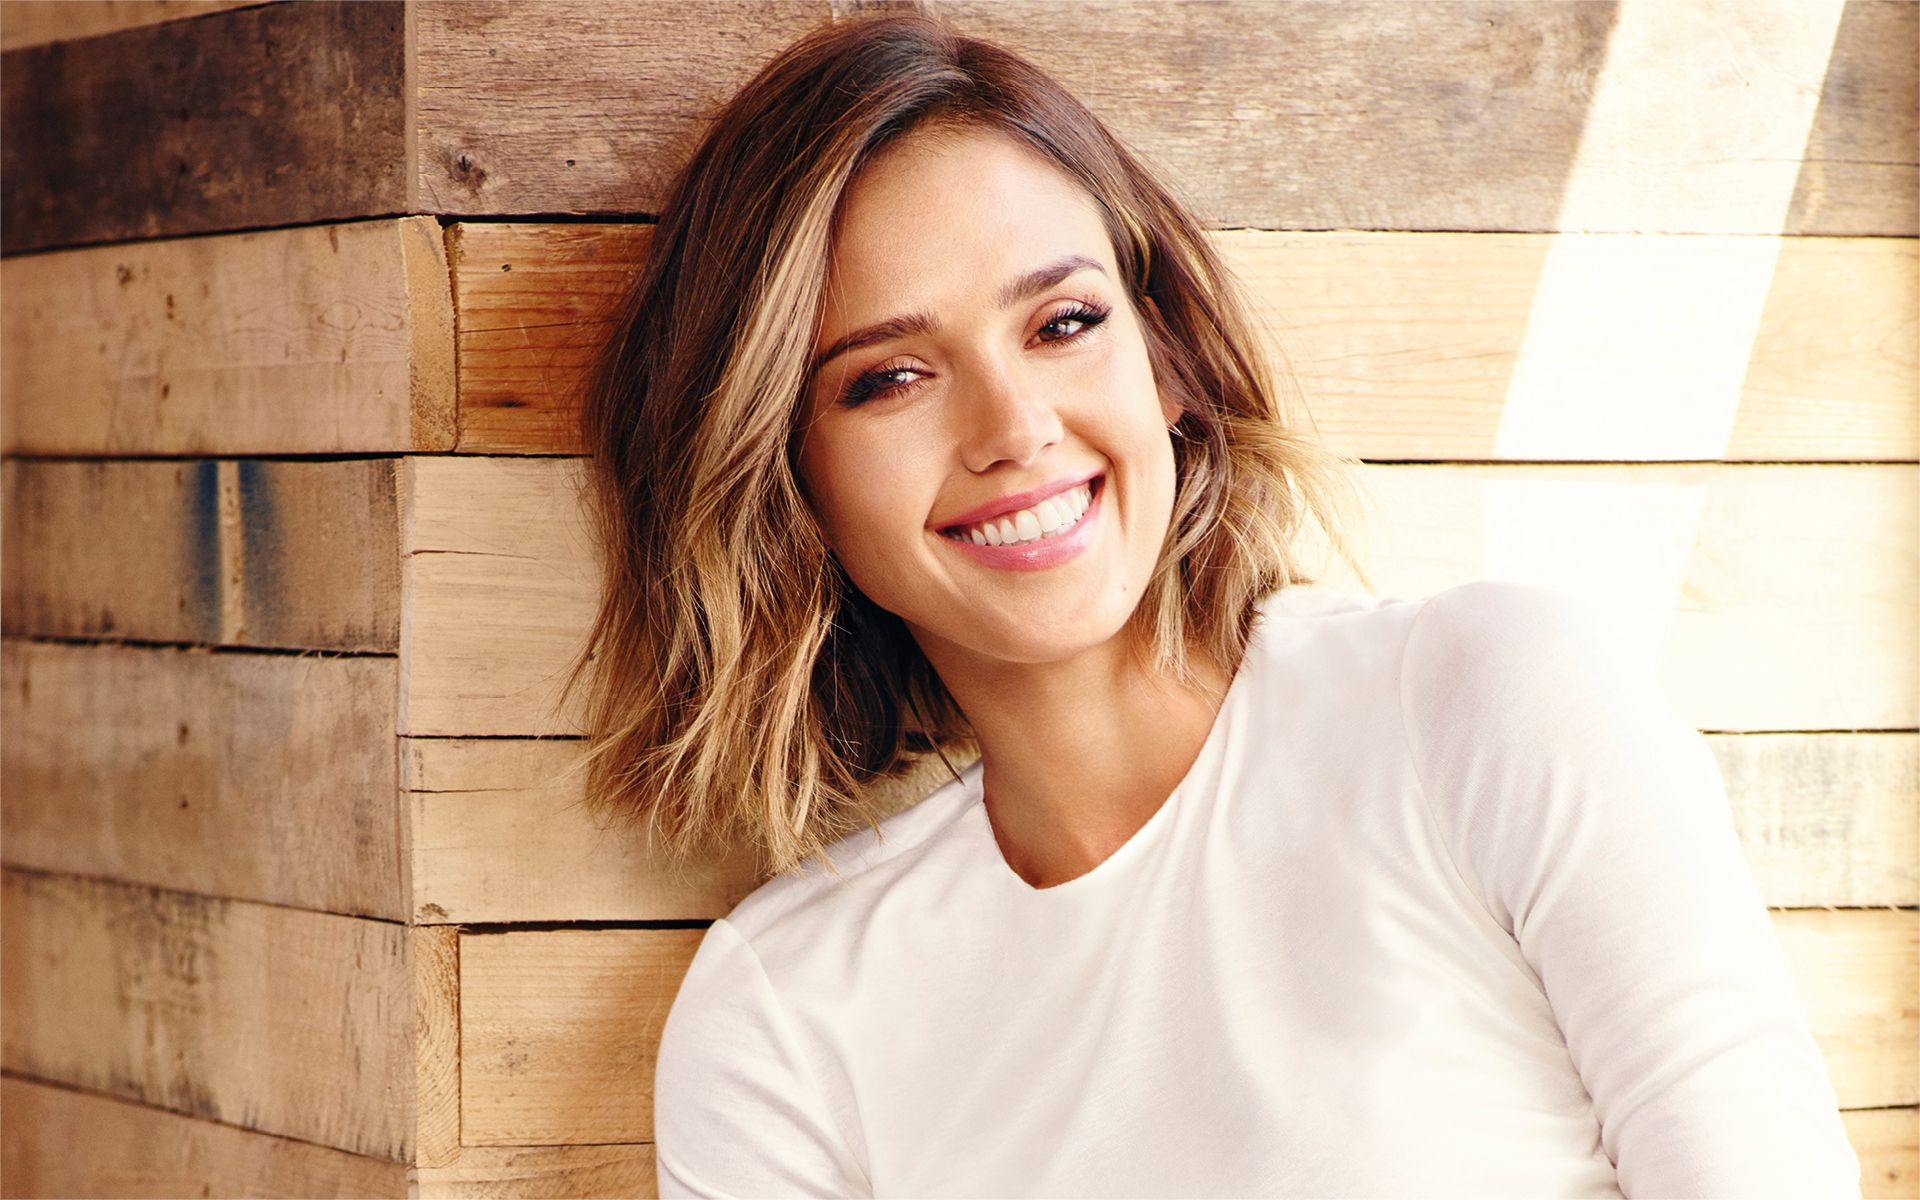 Forum on this topic: Paola Quattrini, jessica-alba/